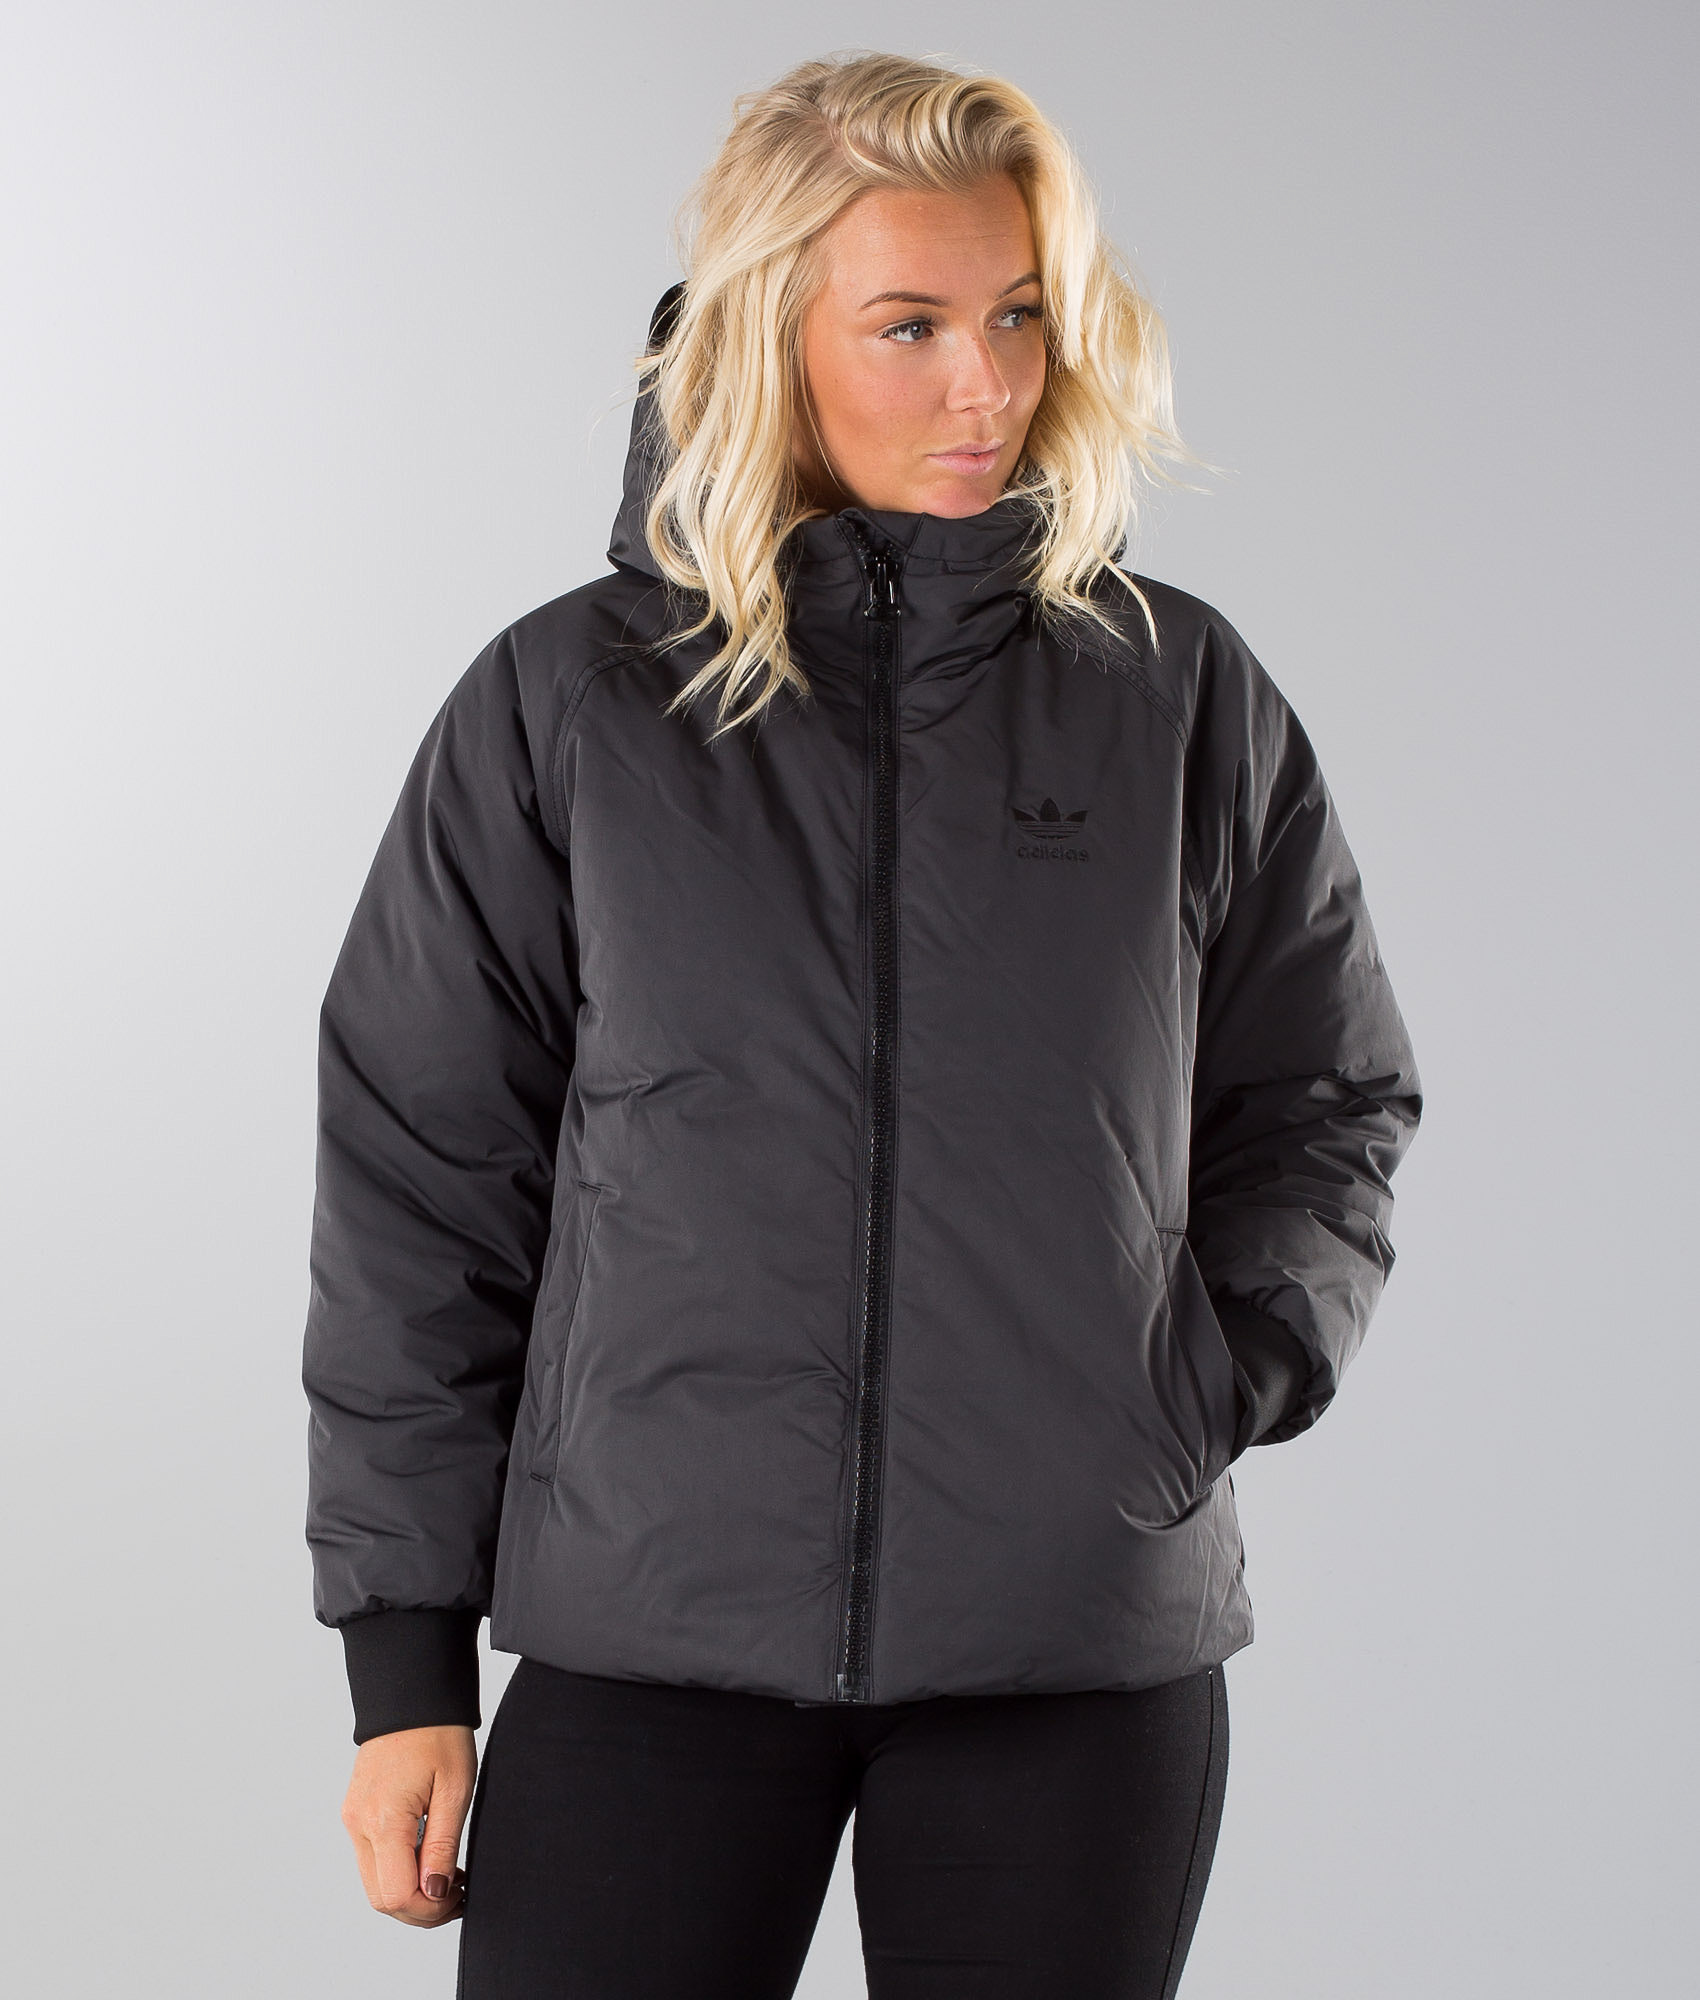 89037f001b62 Adidas Originals Short Down Jacket Black - Ridestore.com